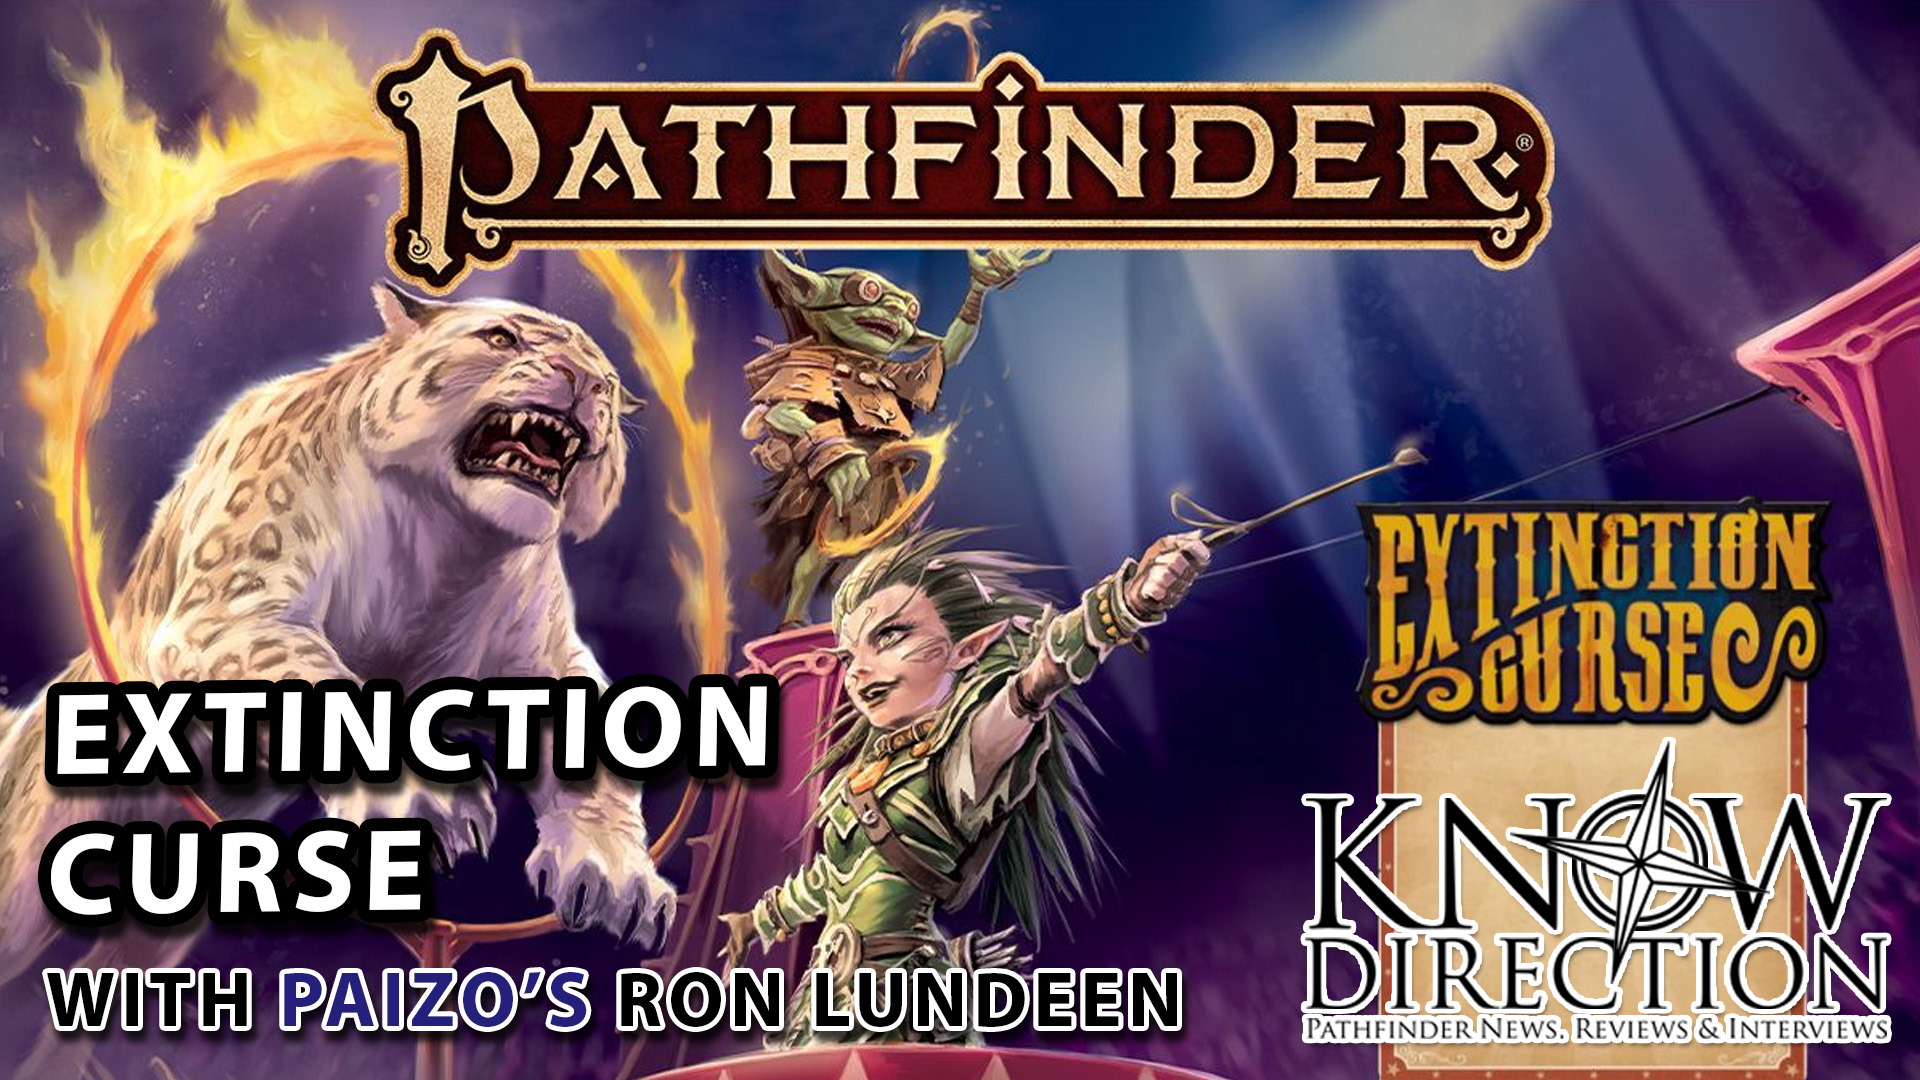 Extinction Curse with Paizo's Ron Lundeen